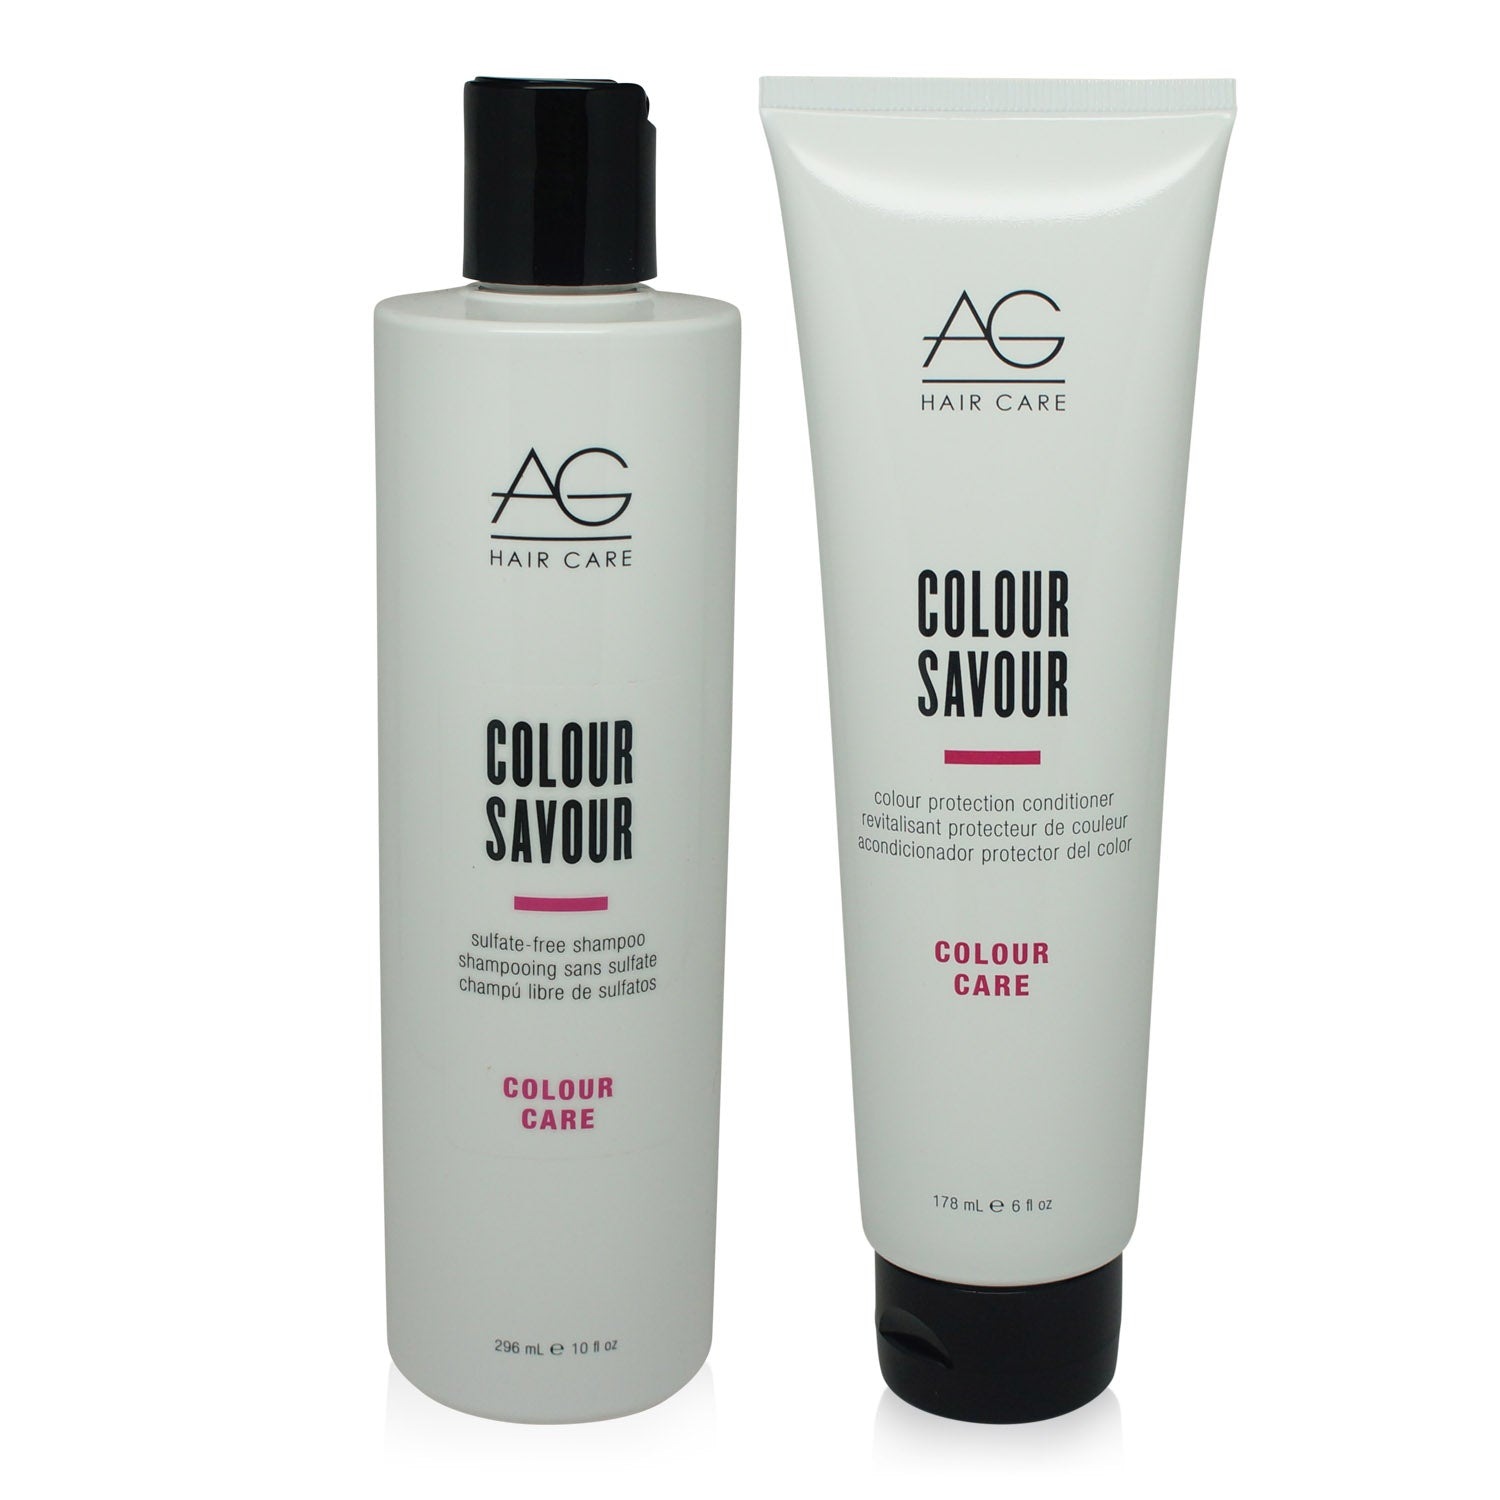 AGHAIR ~ COLOUR SAVOUR SHAMPOO 10 OZ & CONDITIONER 6 OZ ~ COMBO PACK